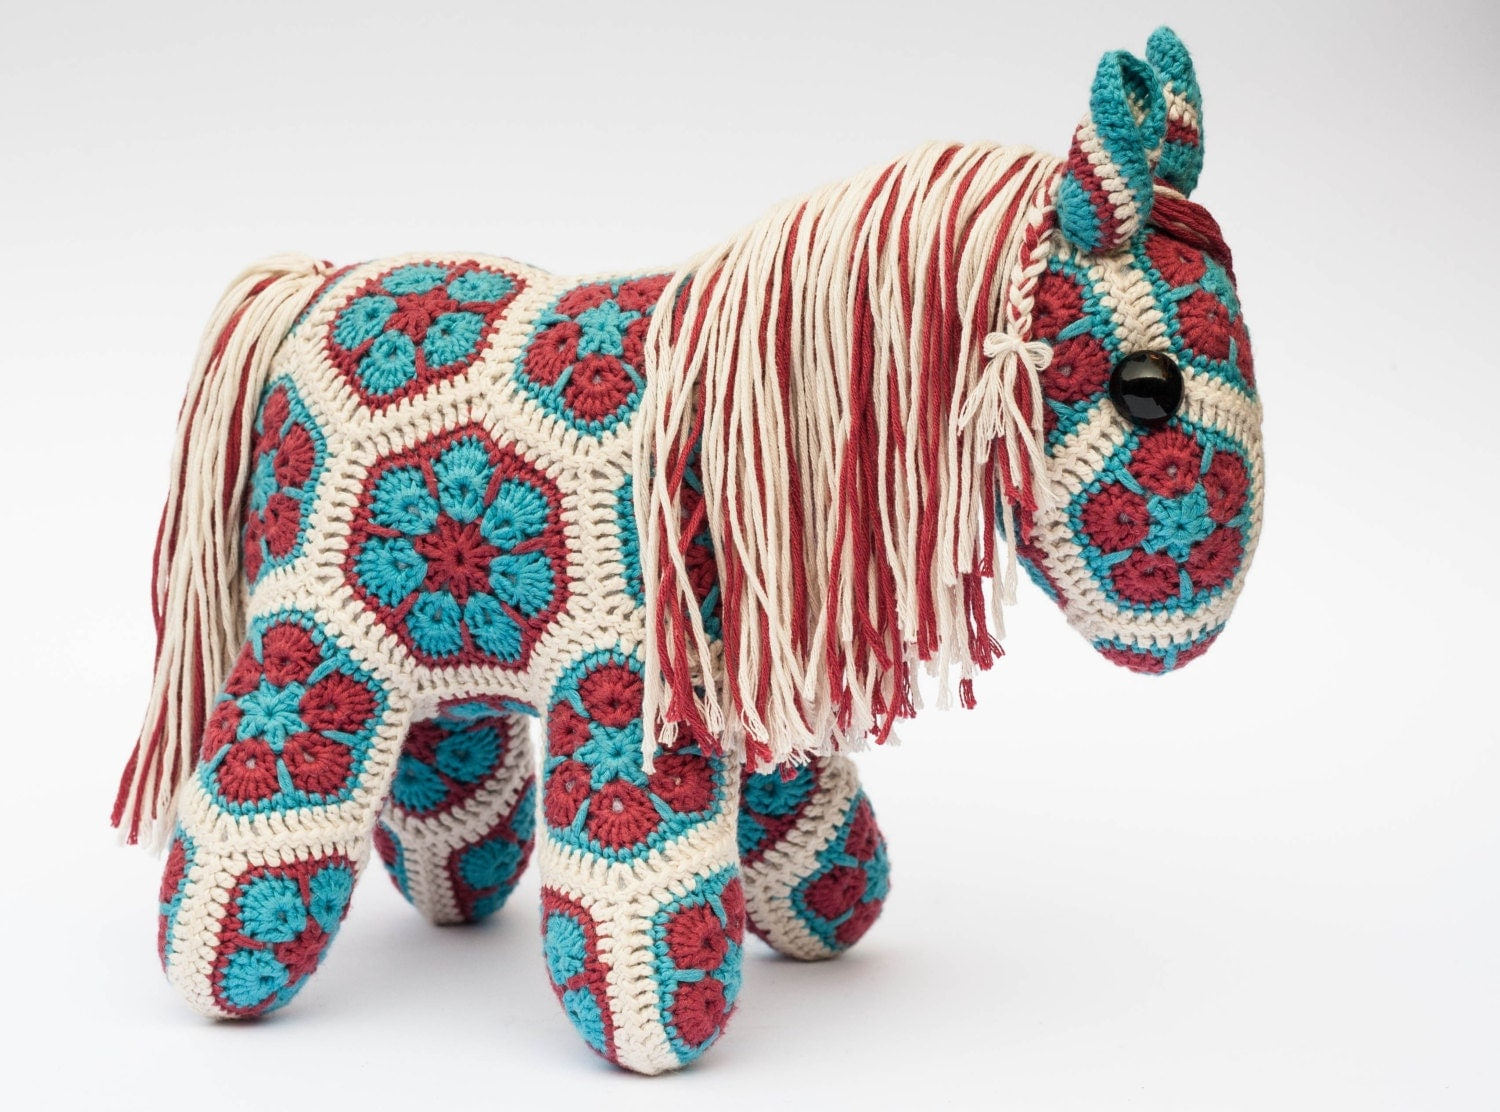 African Flower Pony Crochet Pattern : Crochet African Flower Pony Horse hand made in red by ...